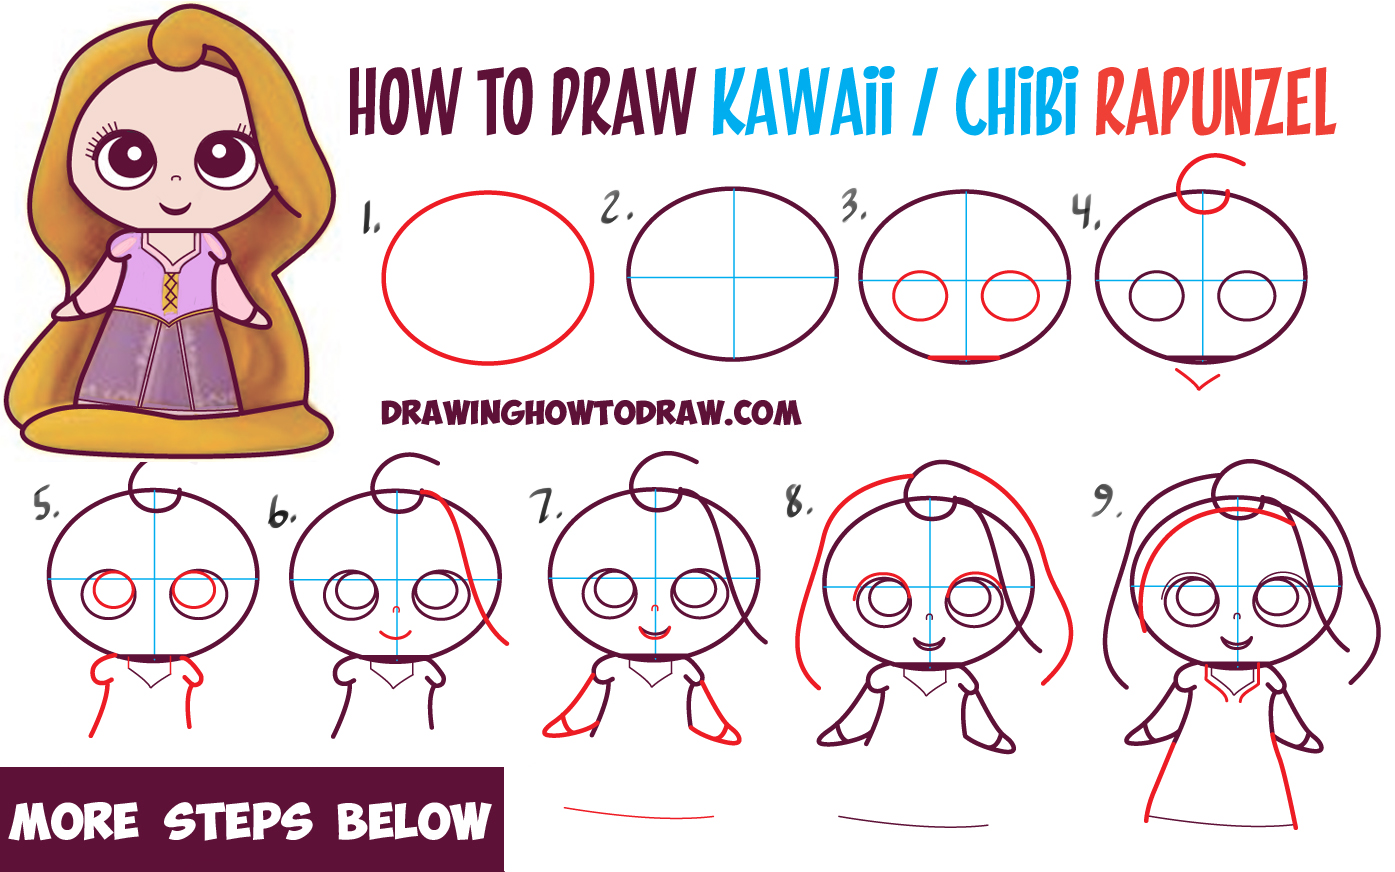 How To Draw Kawaii Chibi Rapunzel From Disney's Tangled In